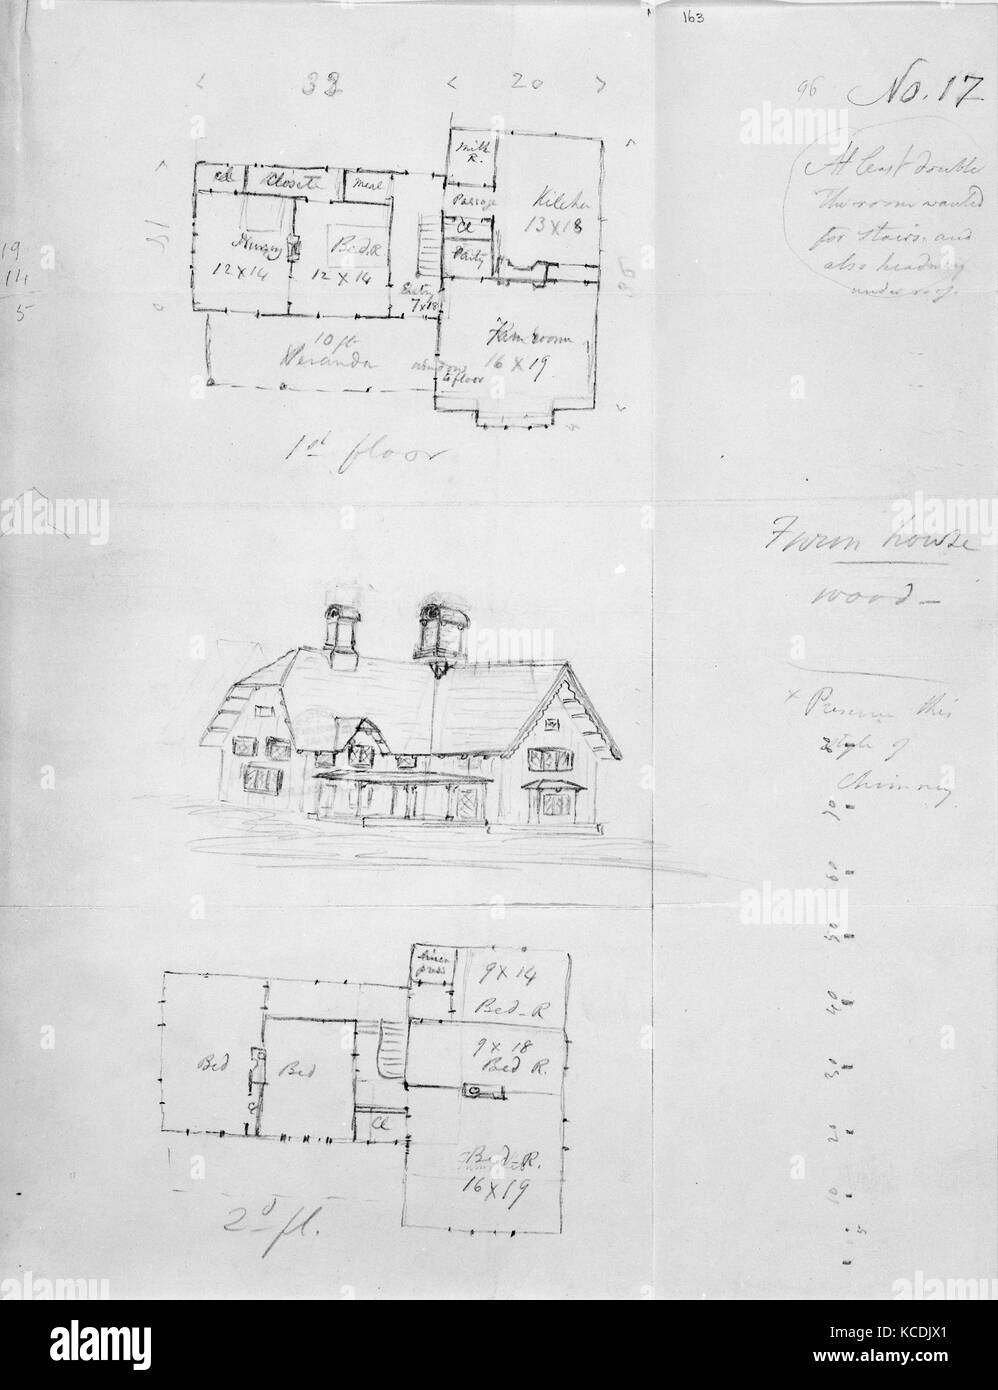 Design for Bracketed American Farm House, Design XVII from The Architecture of Country Houses, Alexander Jackson - Stock Image